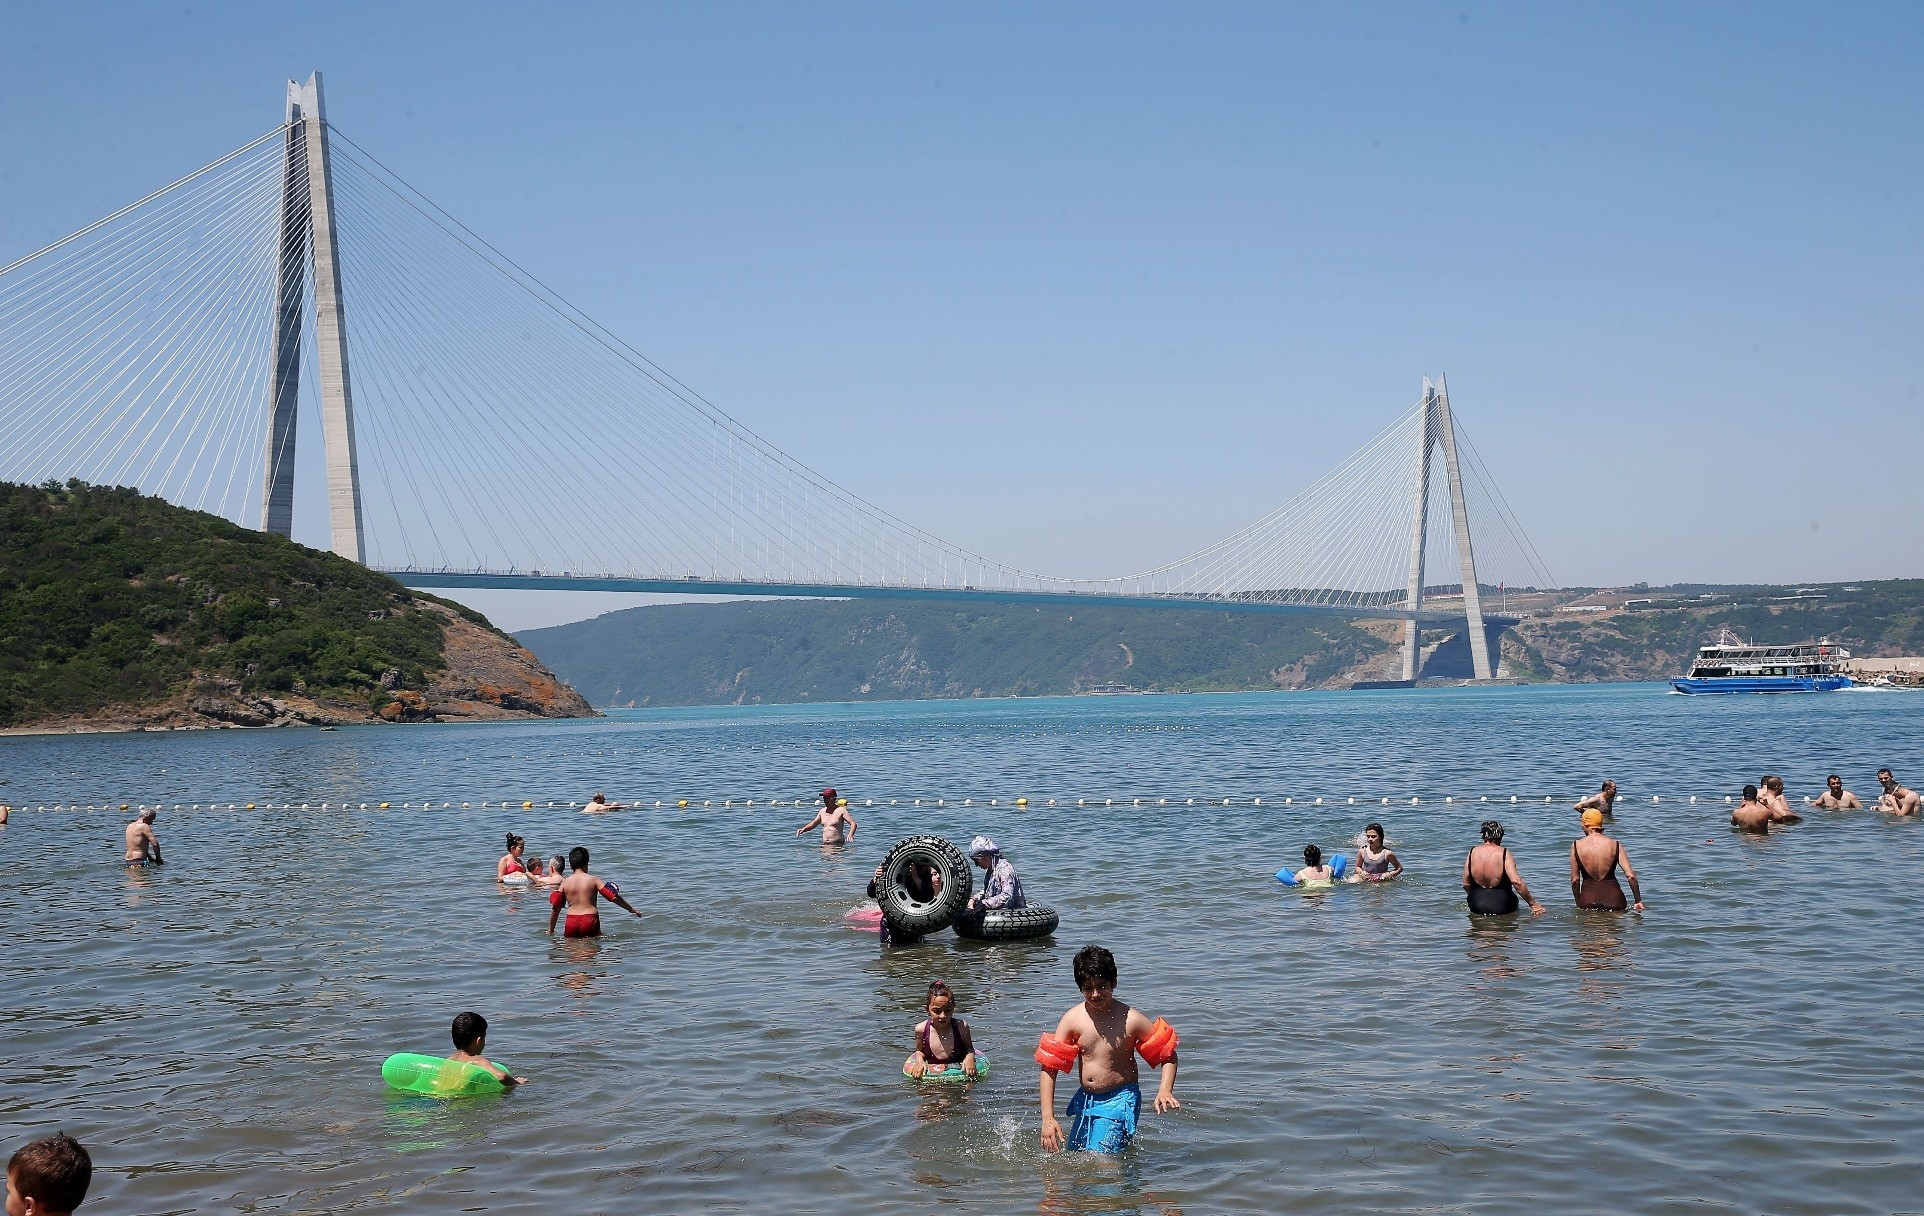 Residents of Istanbul escaped from the heat by crowding all nearby beaches. Temperatures are expected to return to normal today.